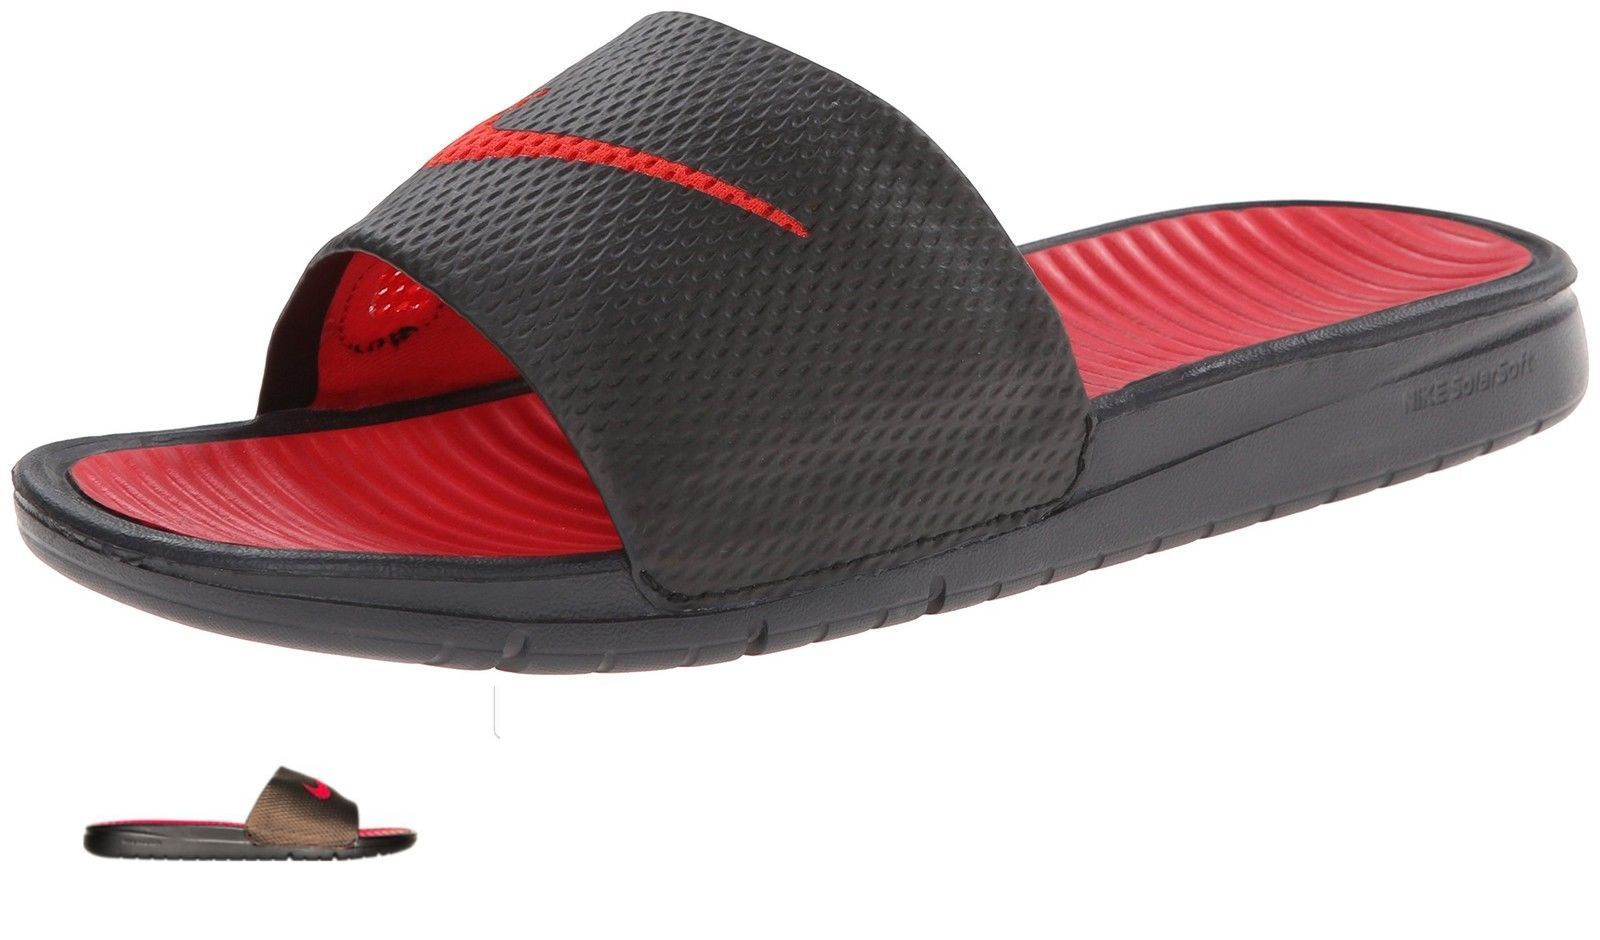 Sandals and Flip Flops 11504: Nwt Nike Benassi Solarsoft Black Red Men S  Slides Slide